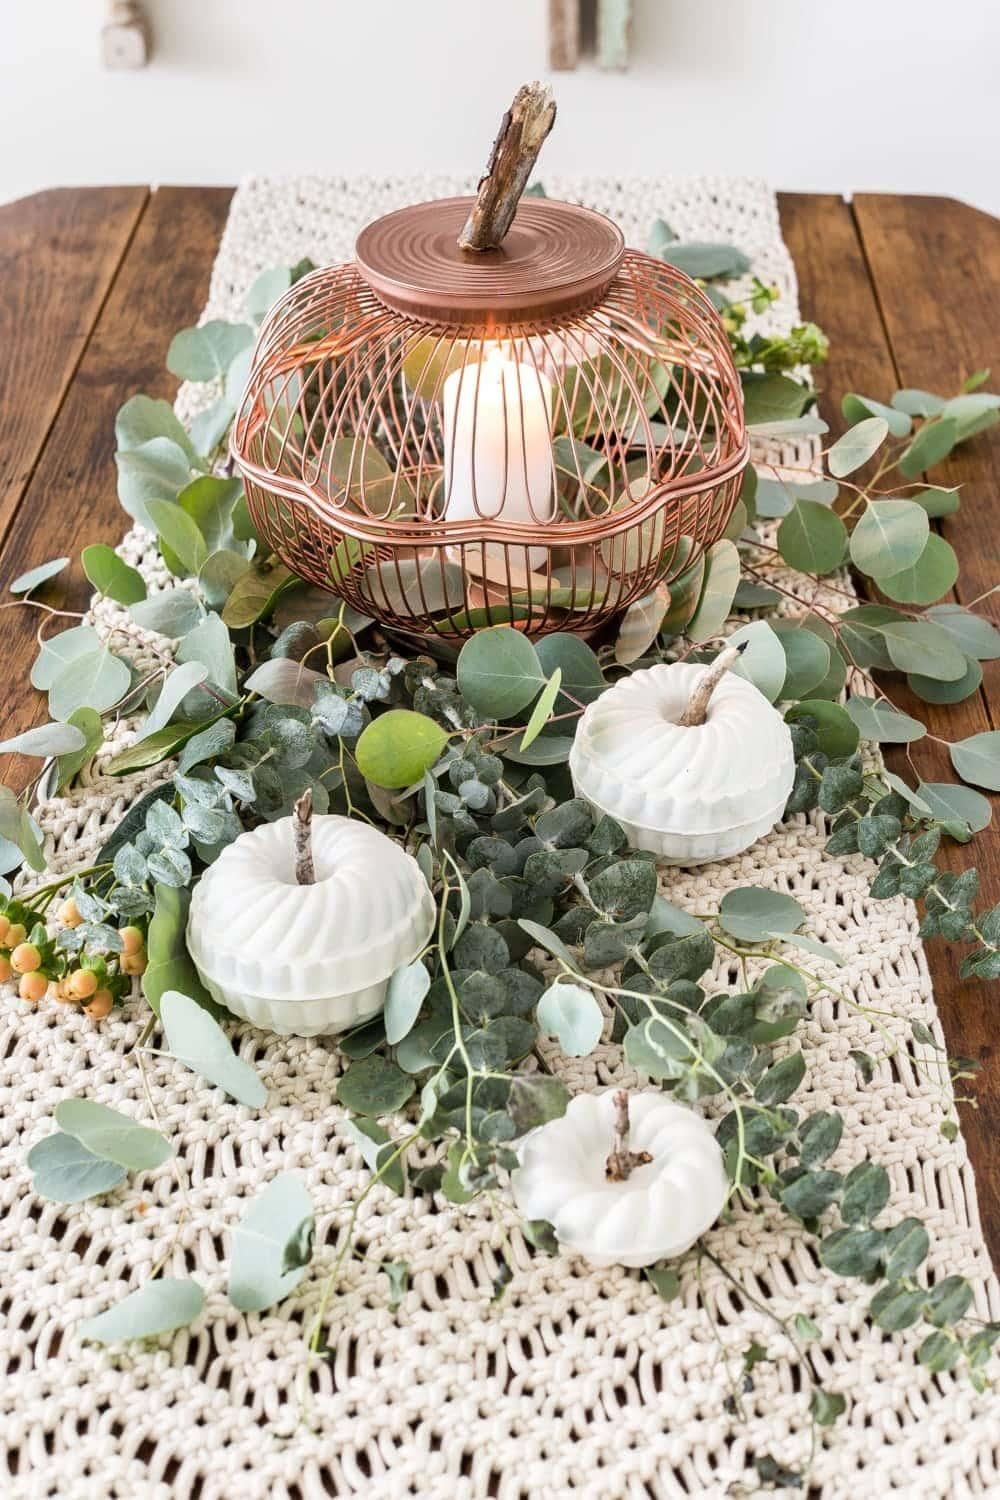 DIY pumpkin lantern using thrifted wire bread baskets and craft pumpkins using mini bundt pan Jello molds